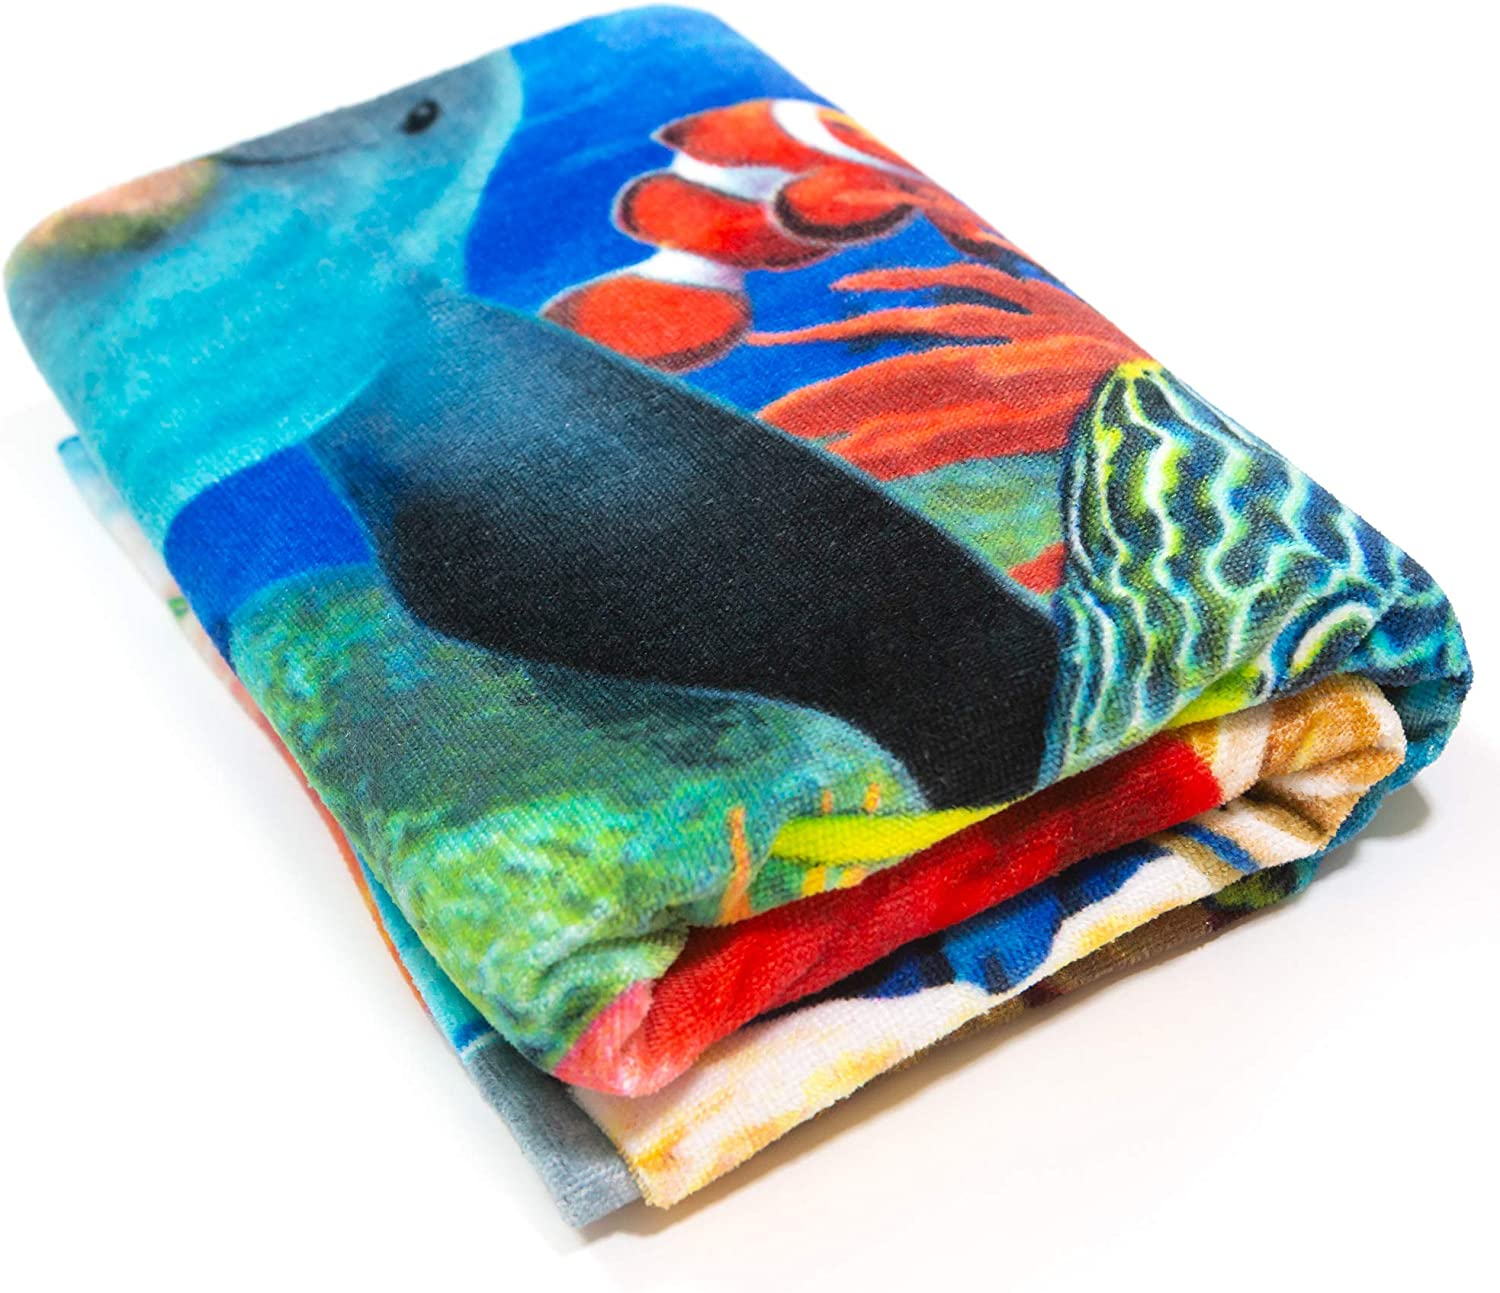 Turtle Beach Towel 54 X 68 Inch Fishes Underwater Tropical Blanket 100/% Cotton